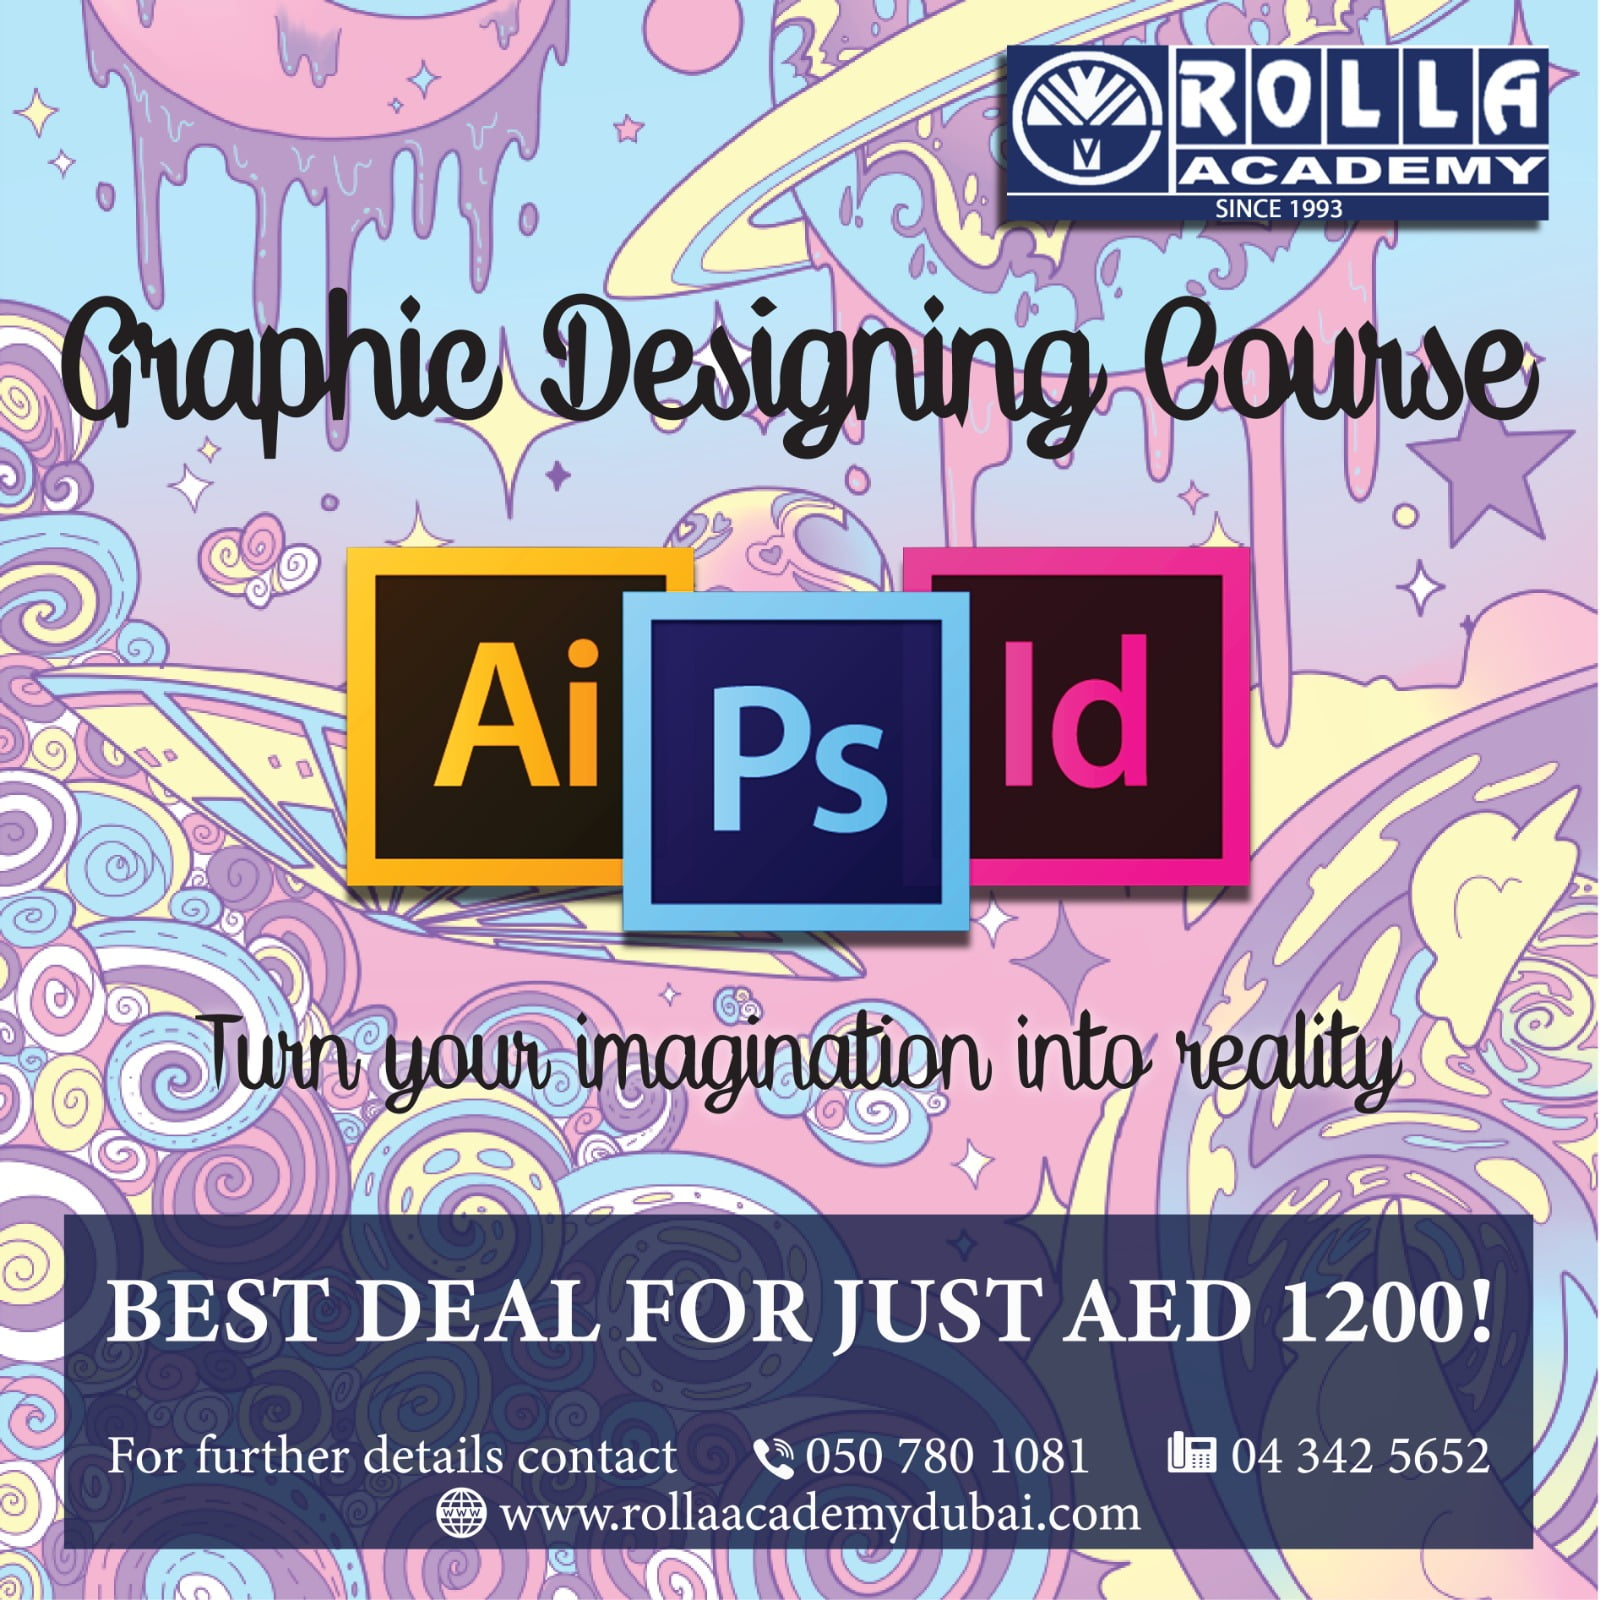 Graphic Design Course Offer